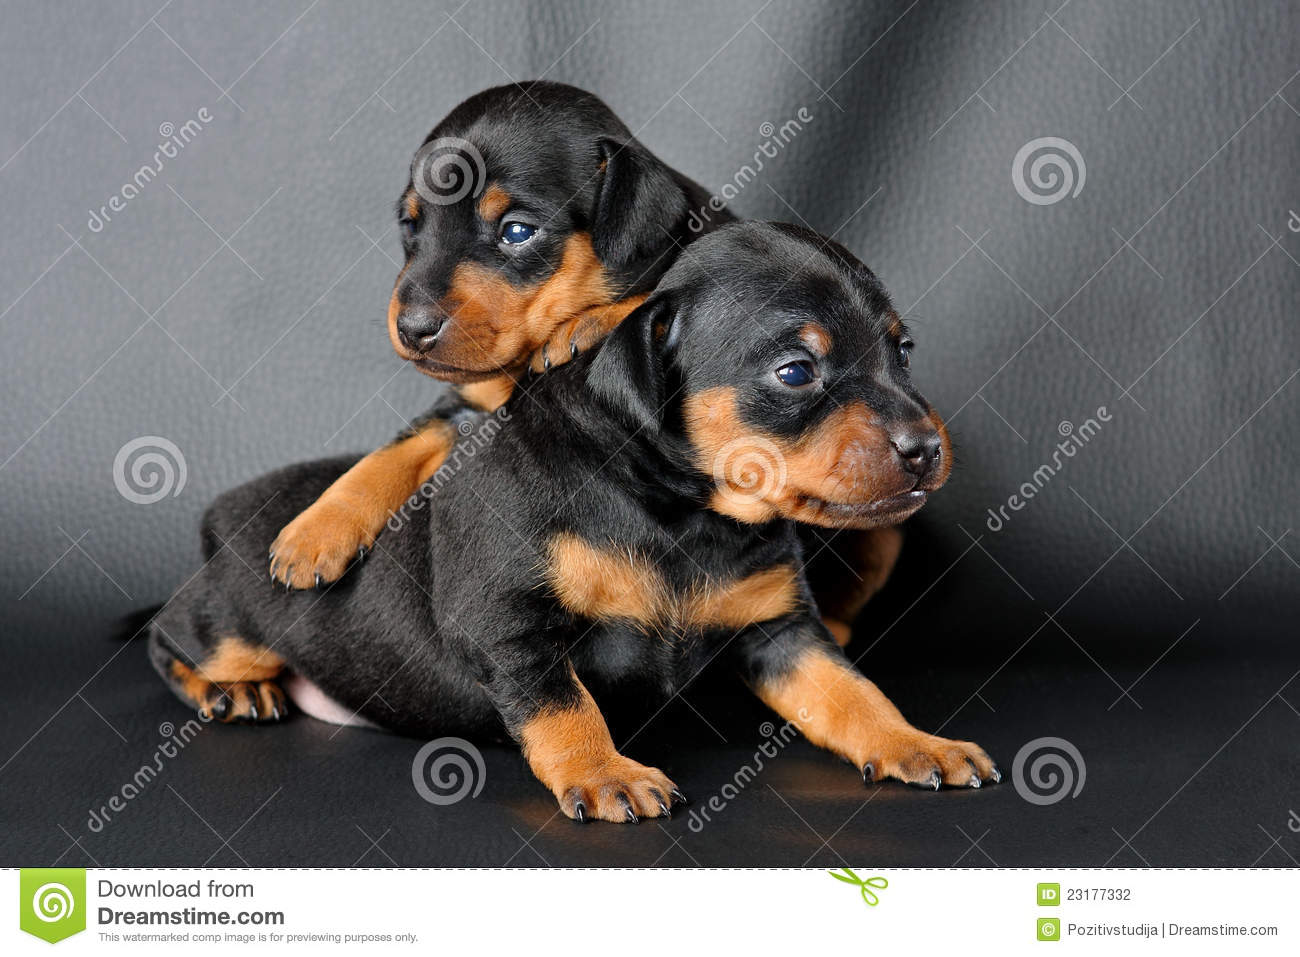 The Miniature Pinscher puppy, 3 weeks old, lying in front of black